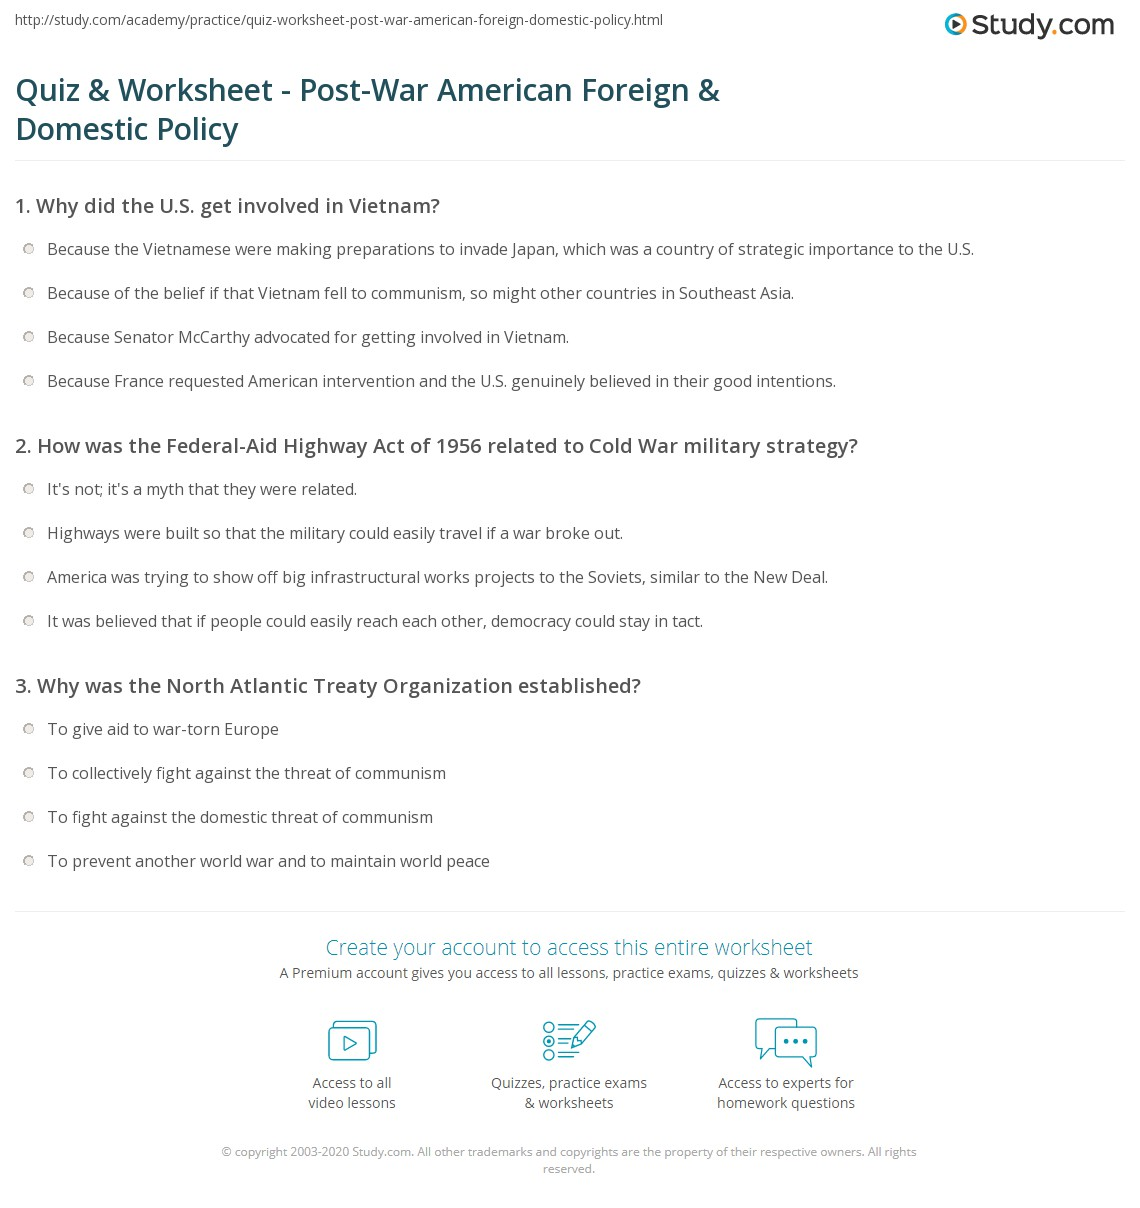 Quiz & Worksheet - Post-War American Foreign & Domestic Policy  math worksheets, education, printable worksheets, worksheets for teachers, and alphabet worksheets Currency Conversions Worksheet 2 1394 x 1140